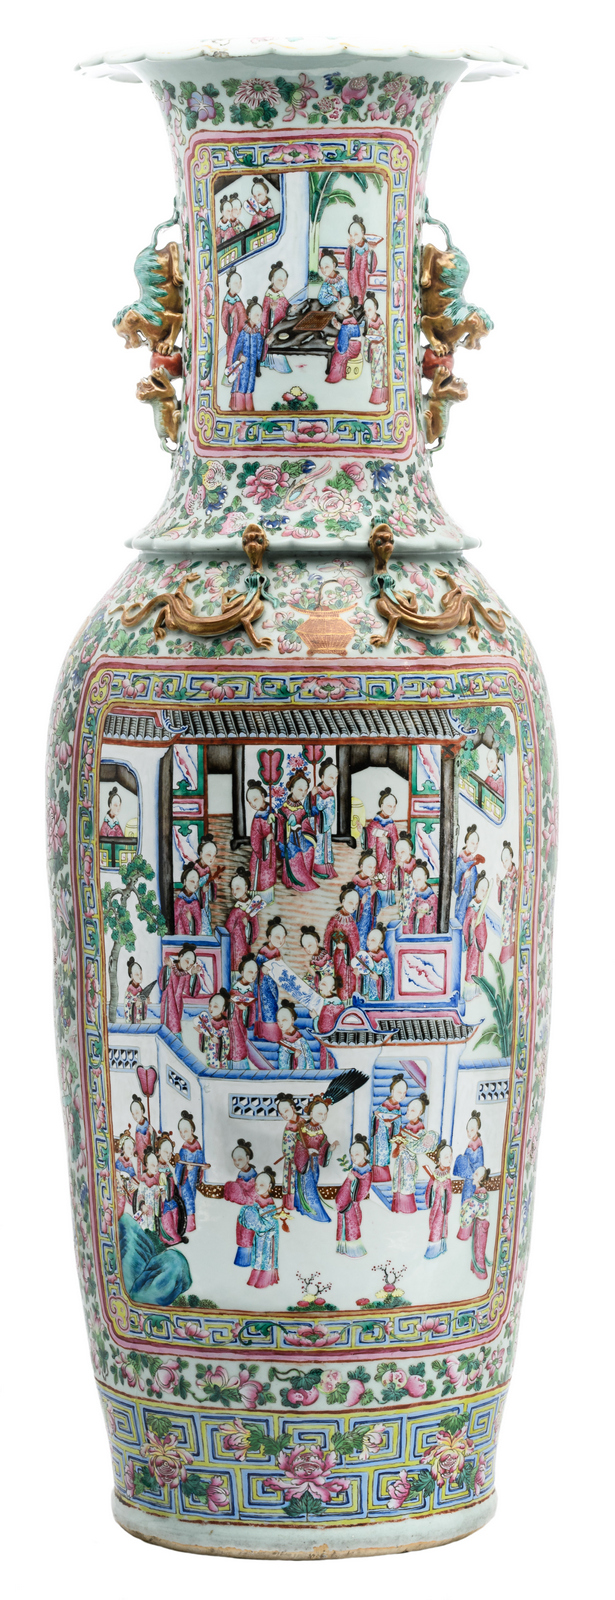 An impressive Chinese famille rose floral and relief decorated vase with dragons and Fu lions, the roundels with court scenes, 19thC, H 133,5 cm